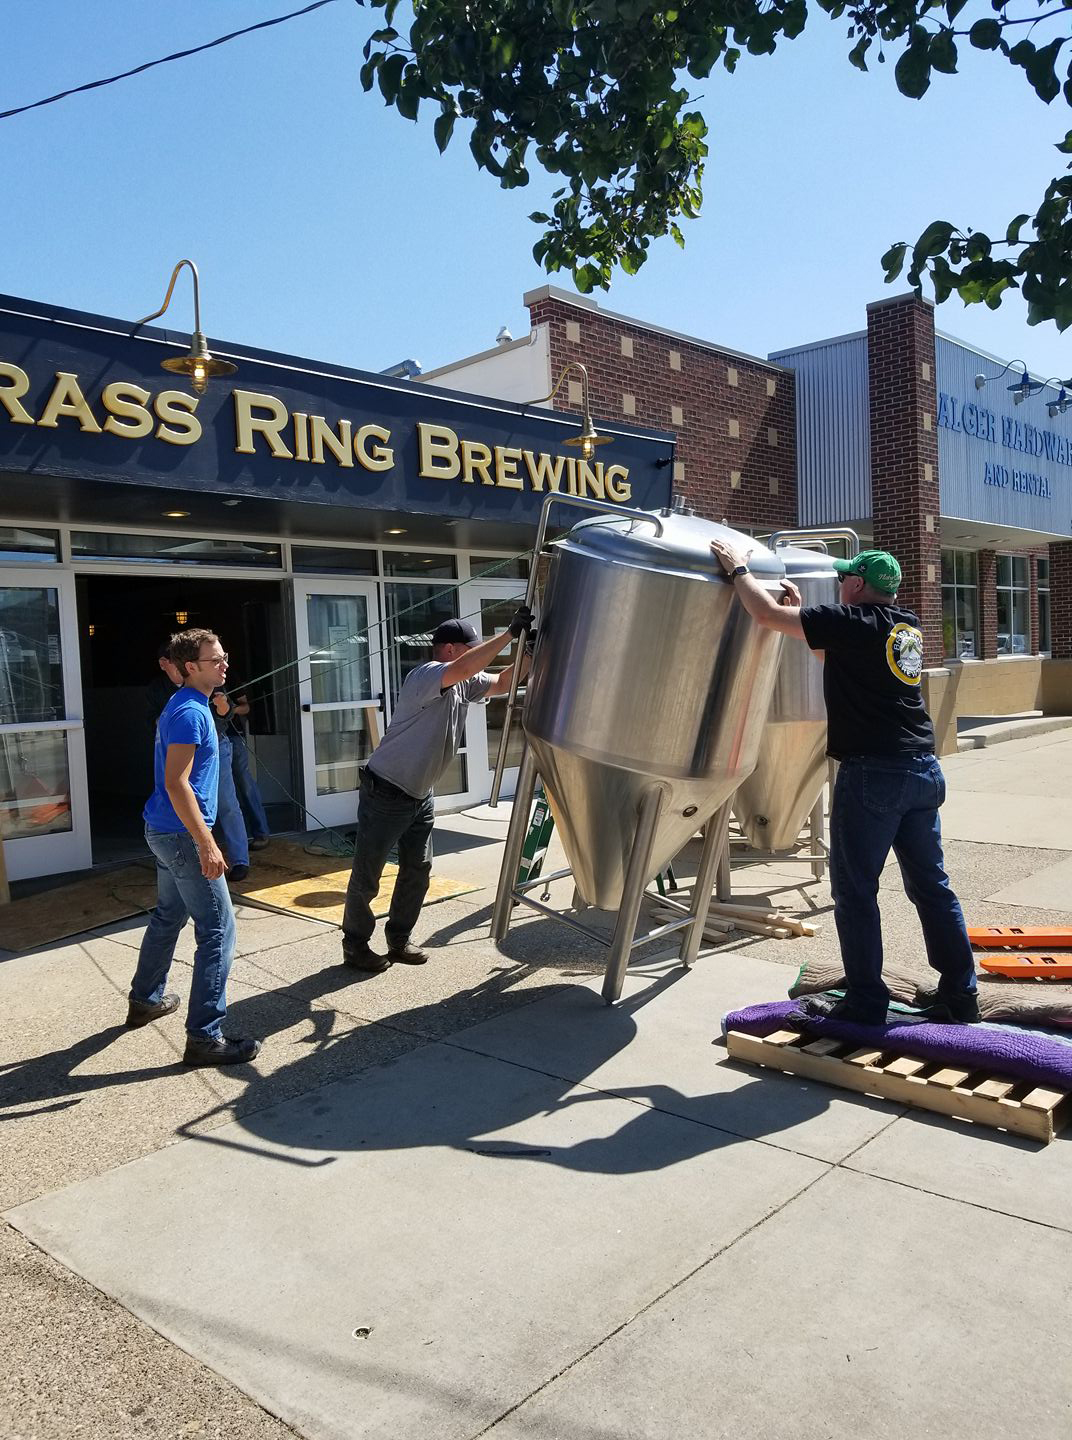 Brass Ring Brewing in Alger Heights.